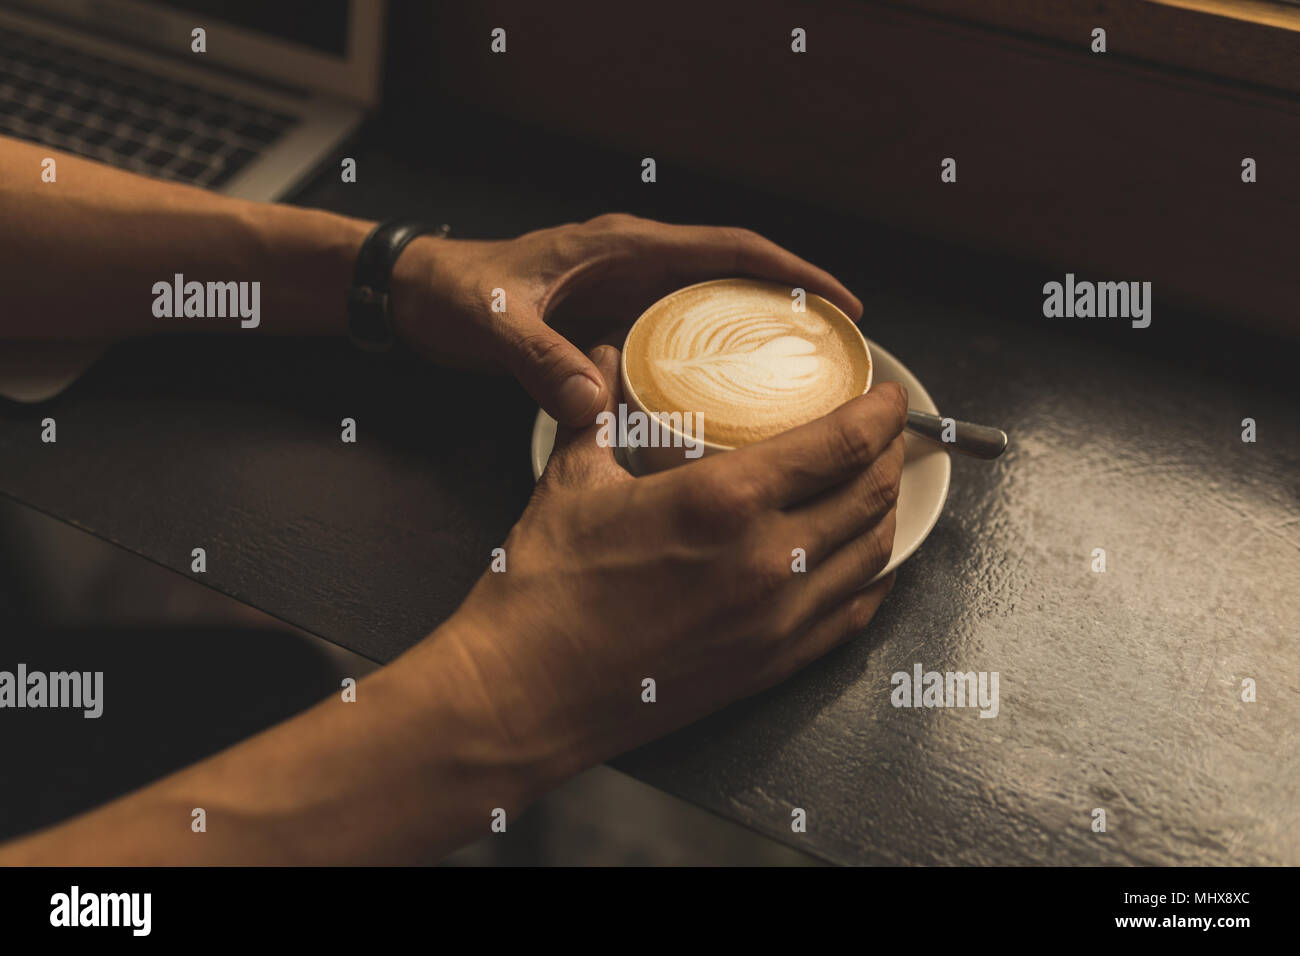 Businessman holding Coffee cup dans le café Photo Stock